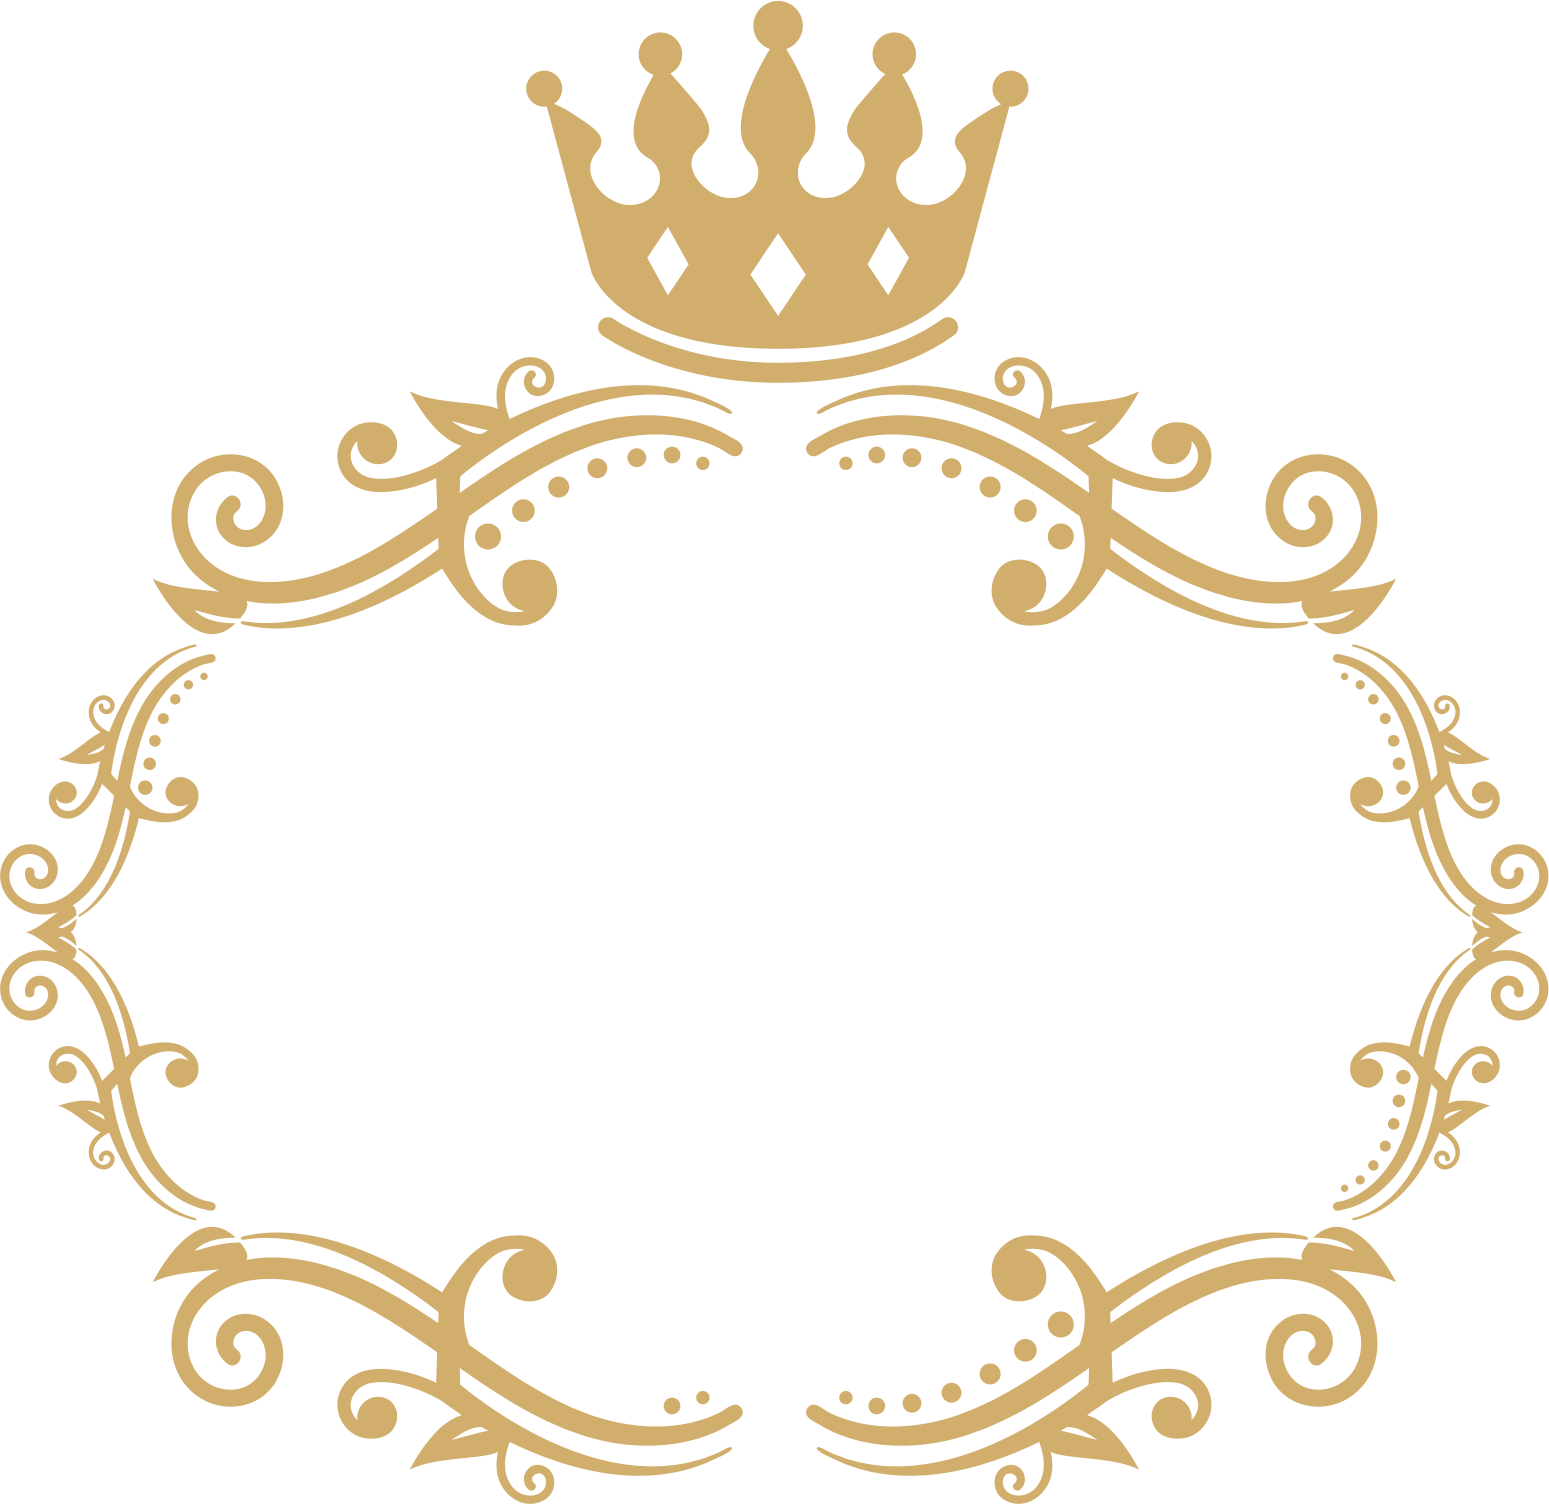 Crown frame clipart. Pinterest cricut borders free